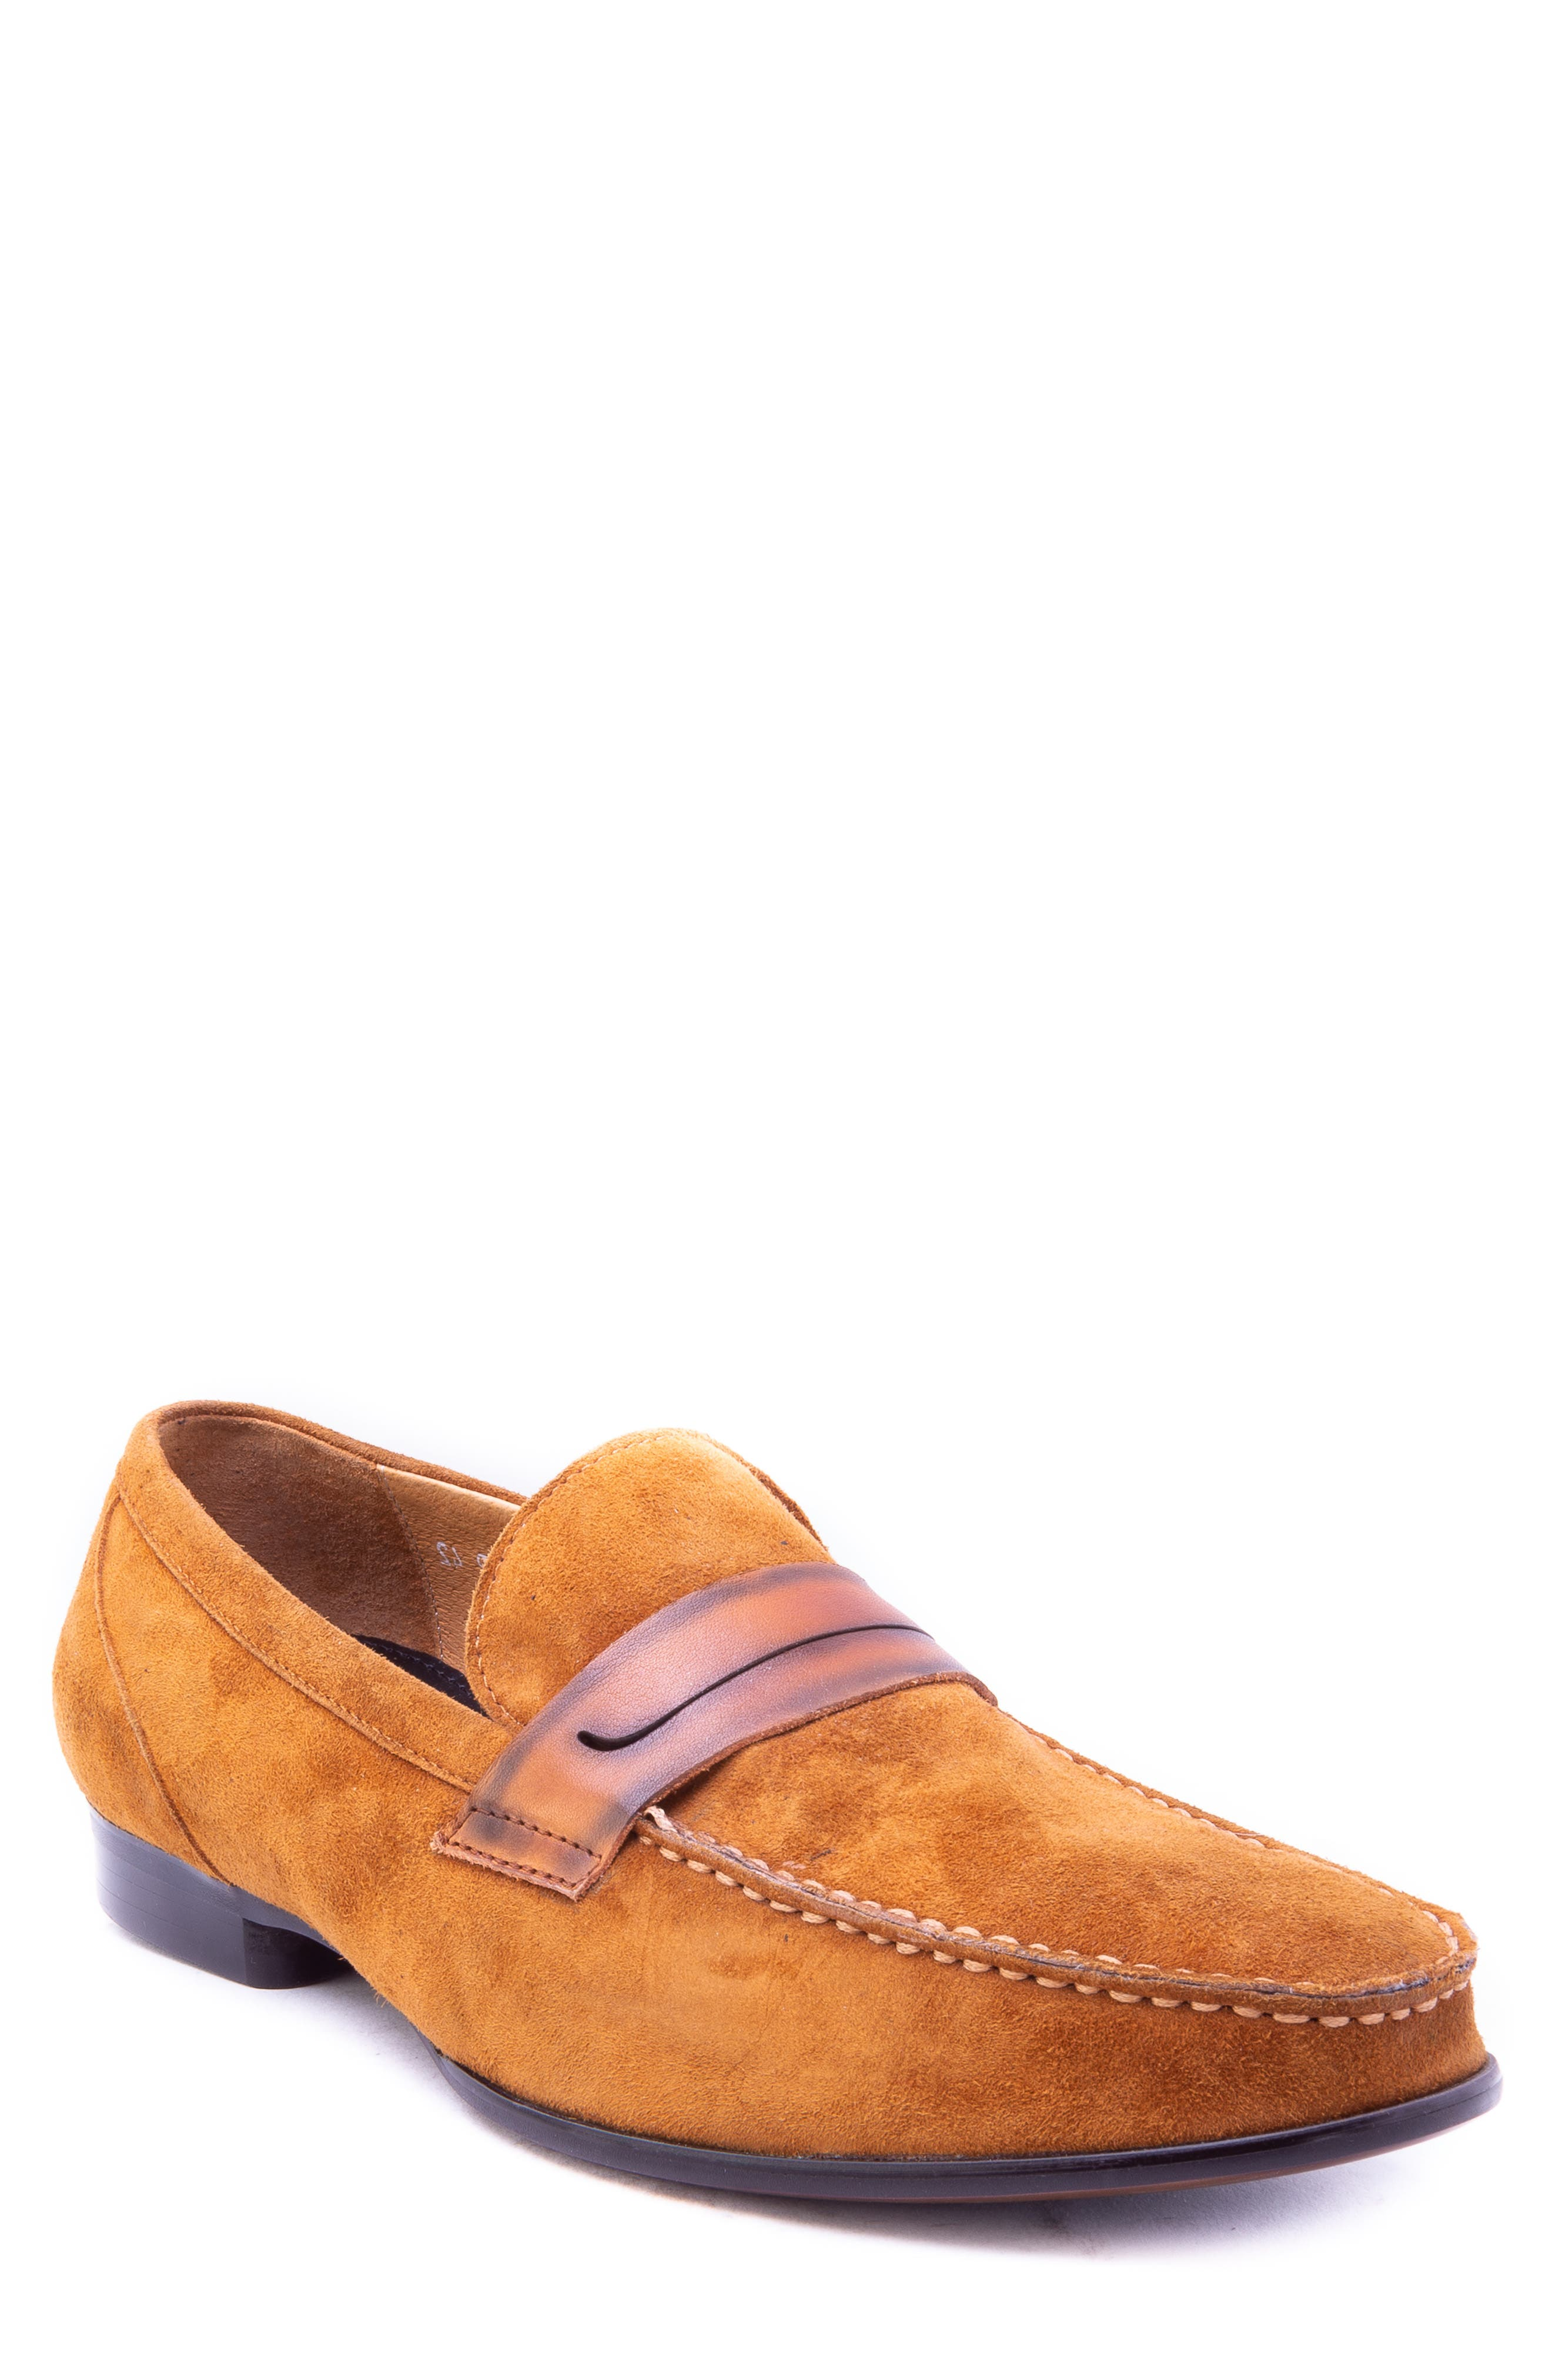 Opie Penny Loafer,                         Main,                         color, COGNAC SUEDE/ LEATHER